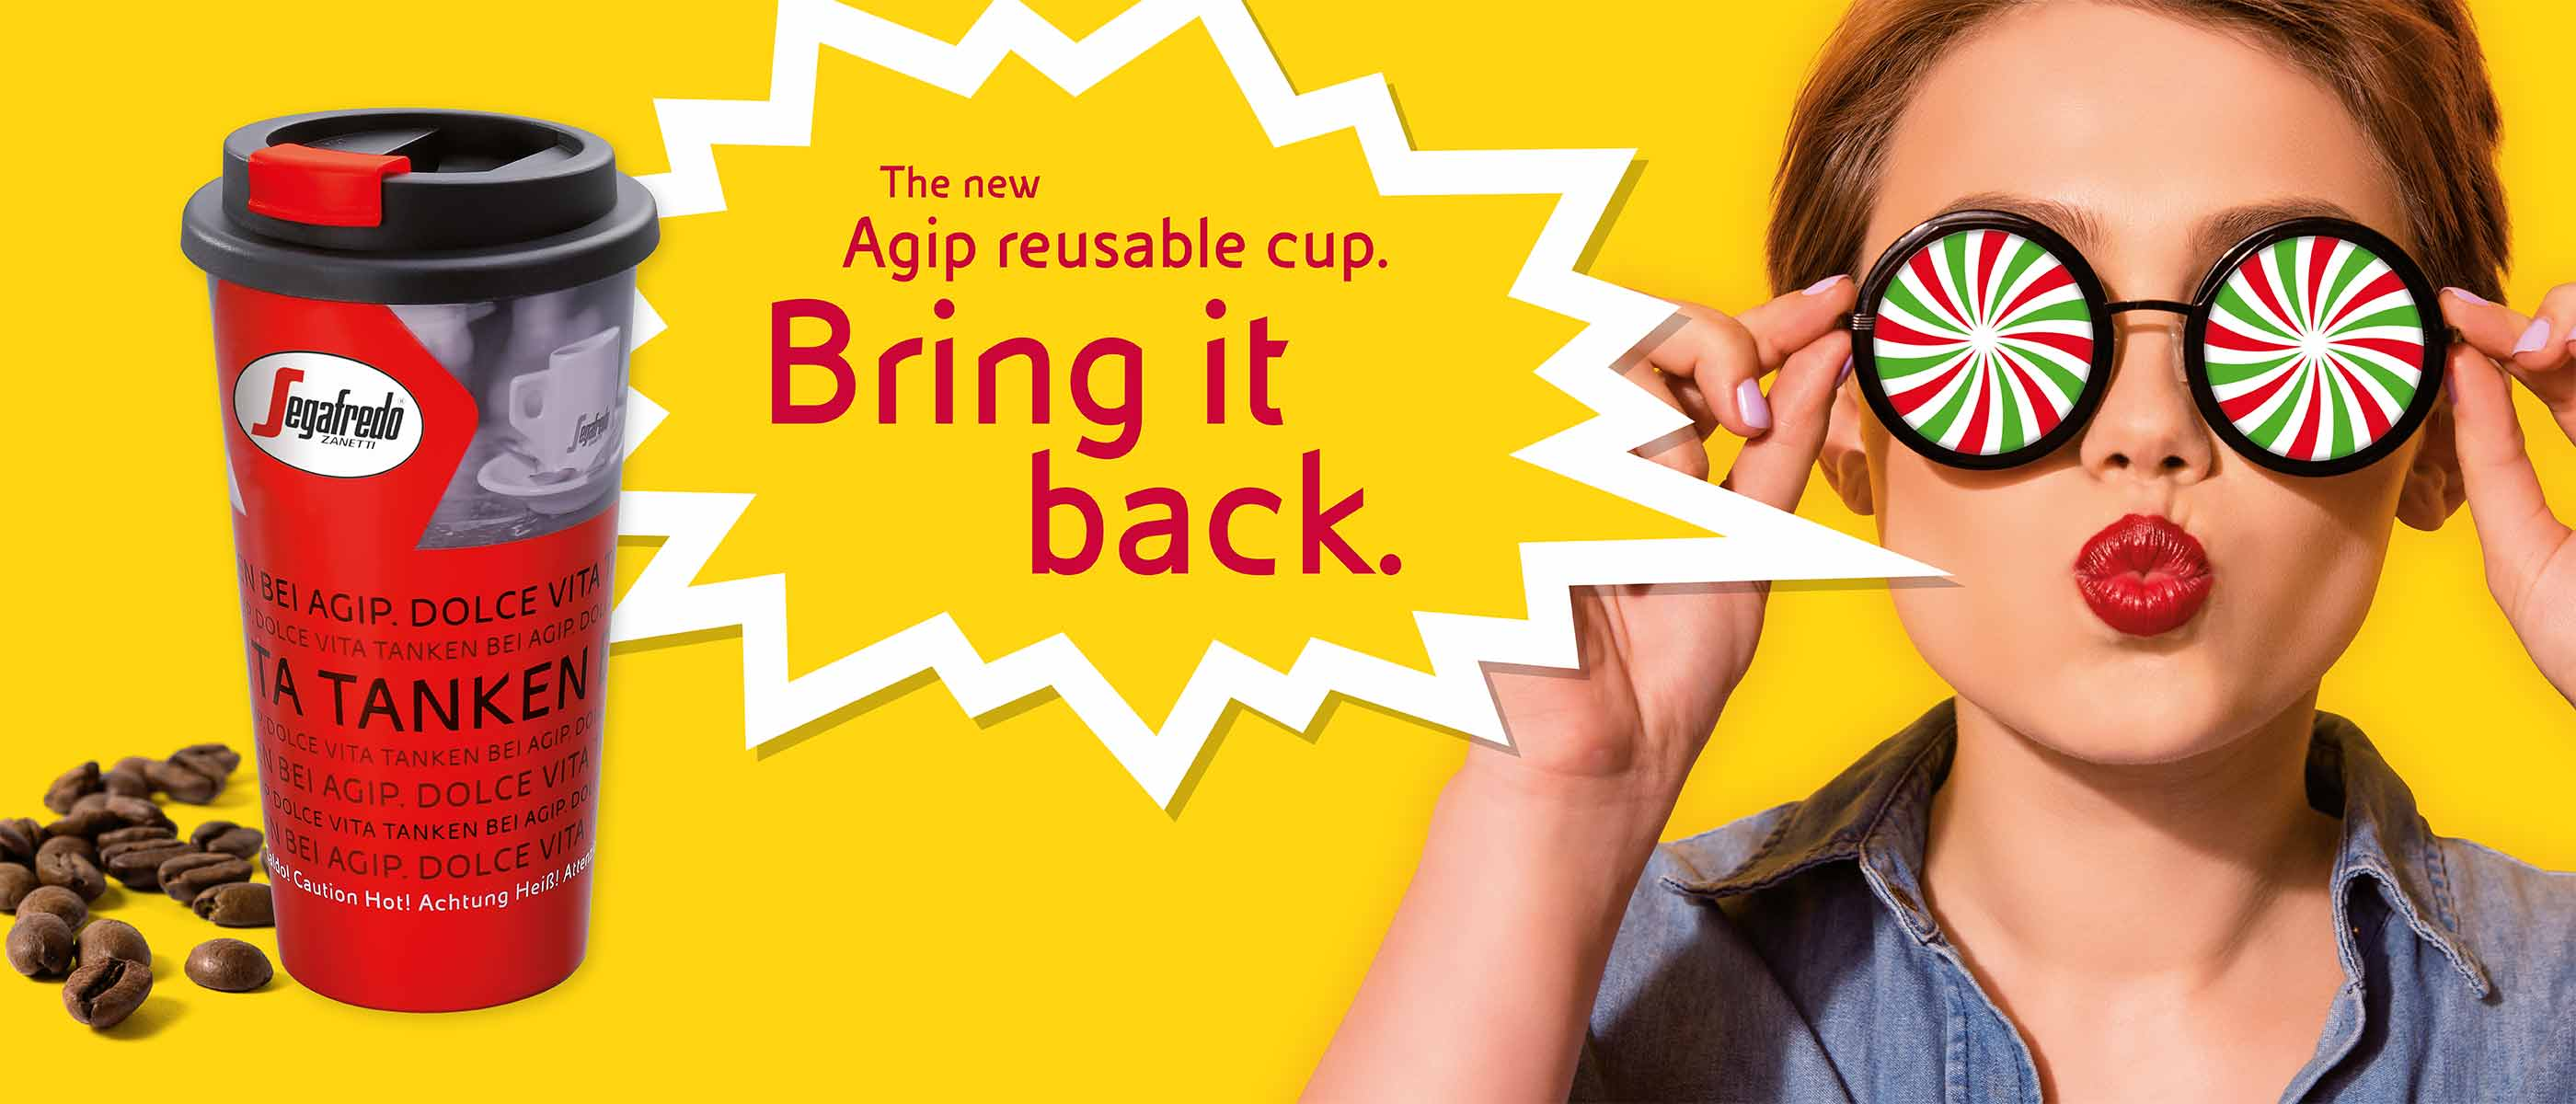 Agip Reusable Cup